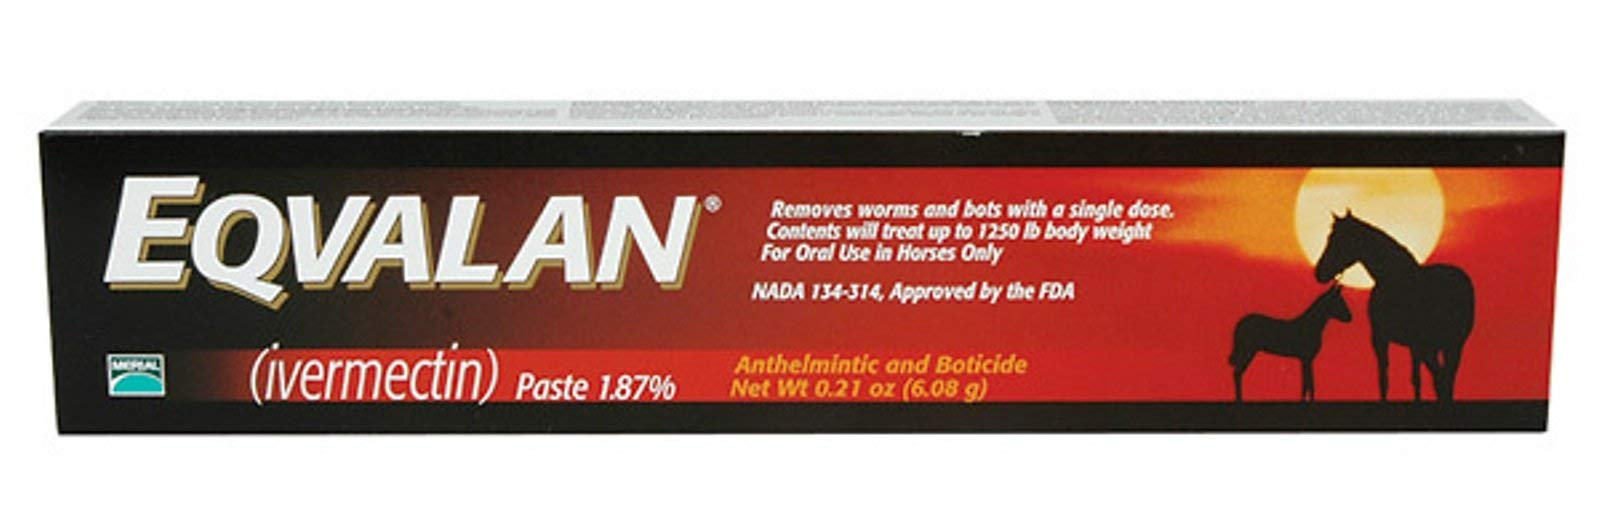 Eqvalan [Ivermectin 1.87%] De-Wormer For Horses, 0.21 oz. [6.08g] Paste by Unknown by Unknown